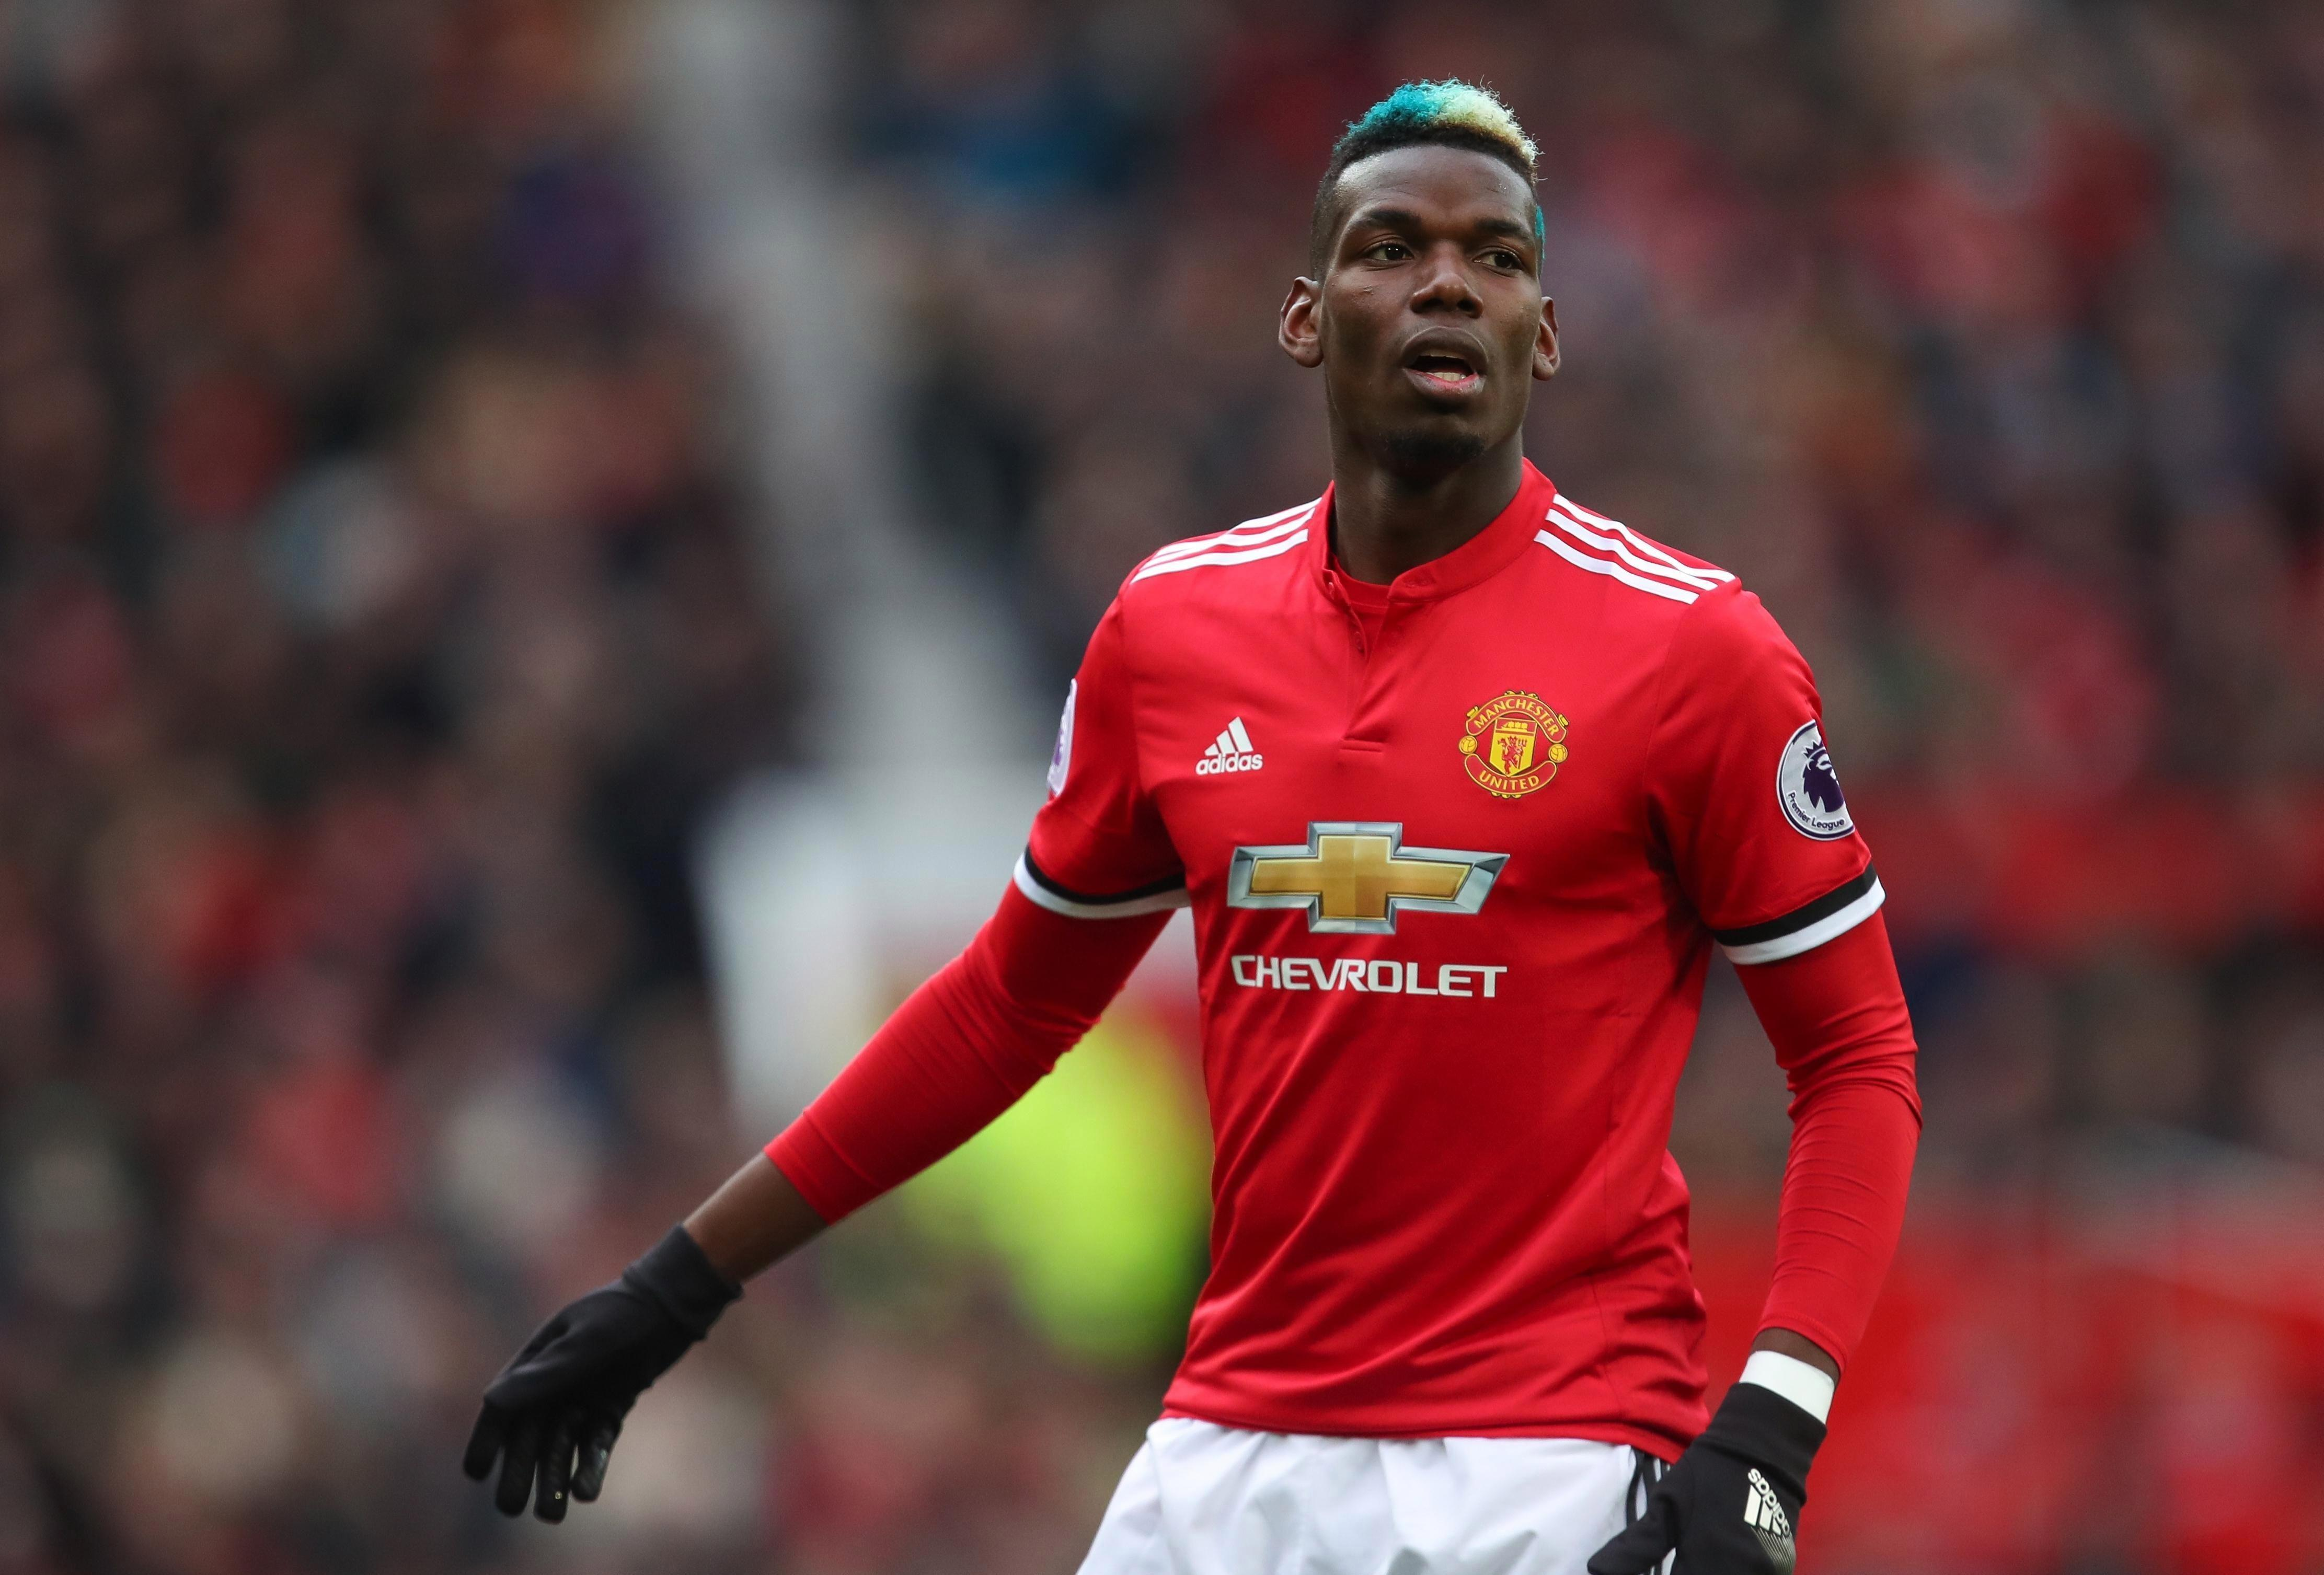 Pogba's future has become unclear